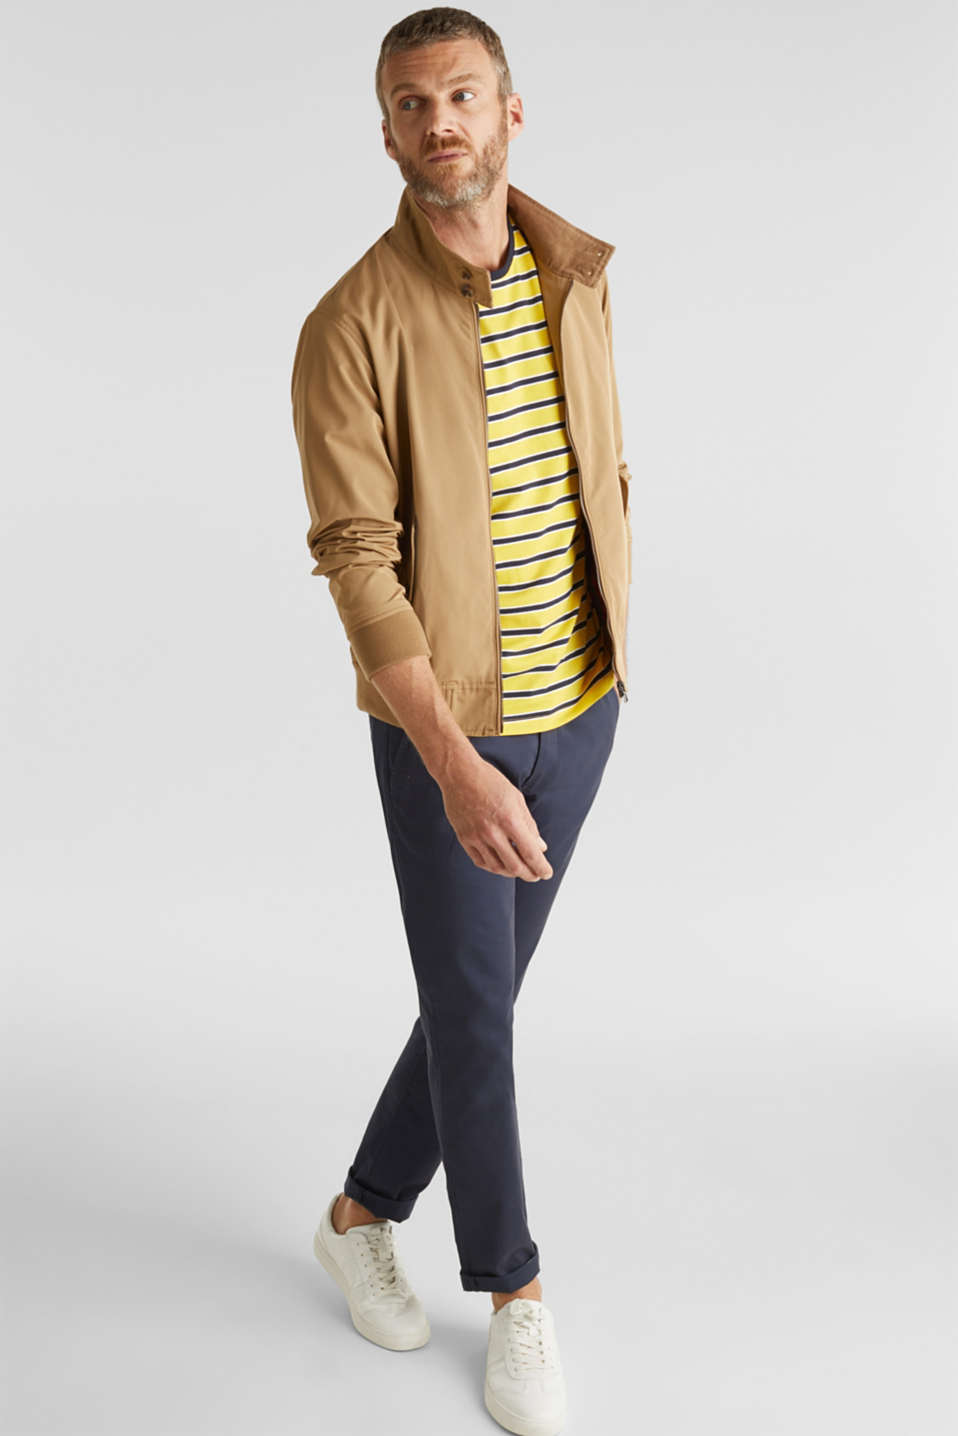 Jersey T-shirt with stripes, 100% cotton, YELLOW 3, detail image number 2